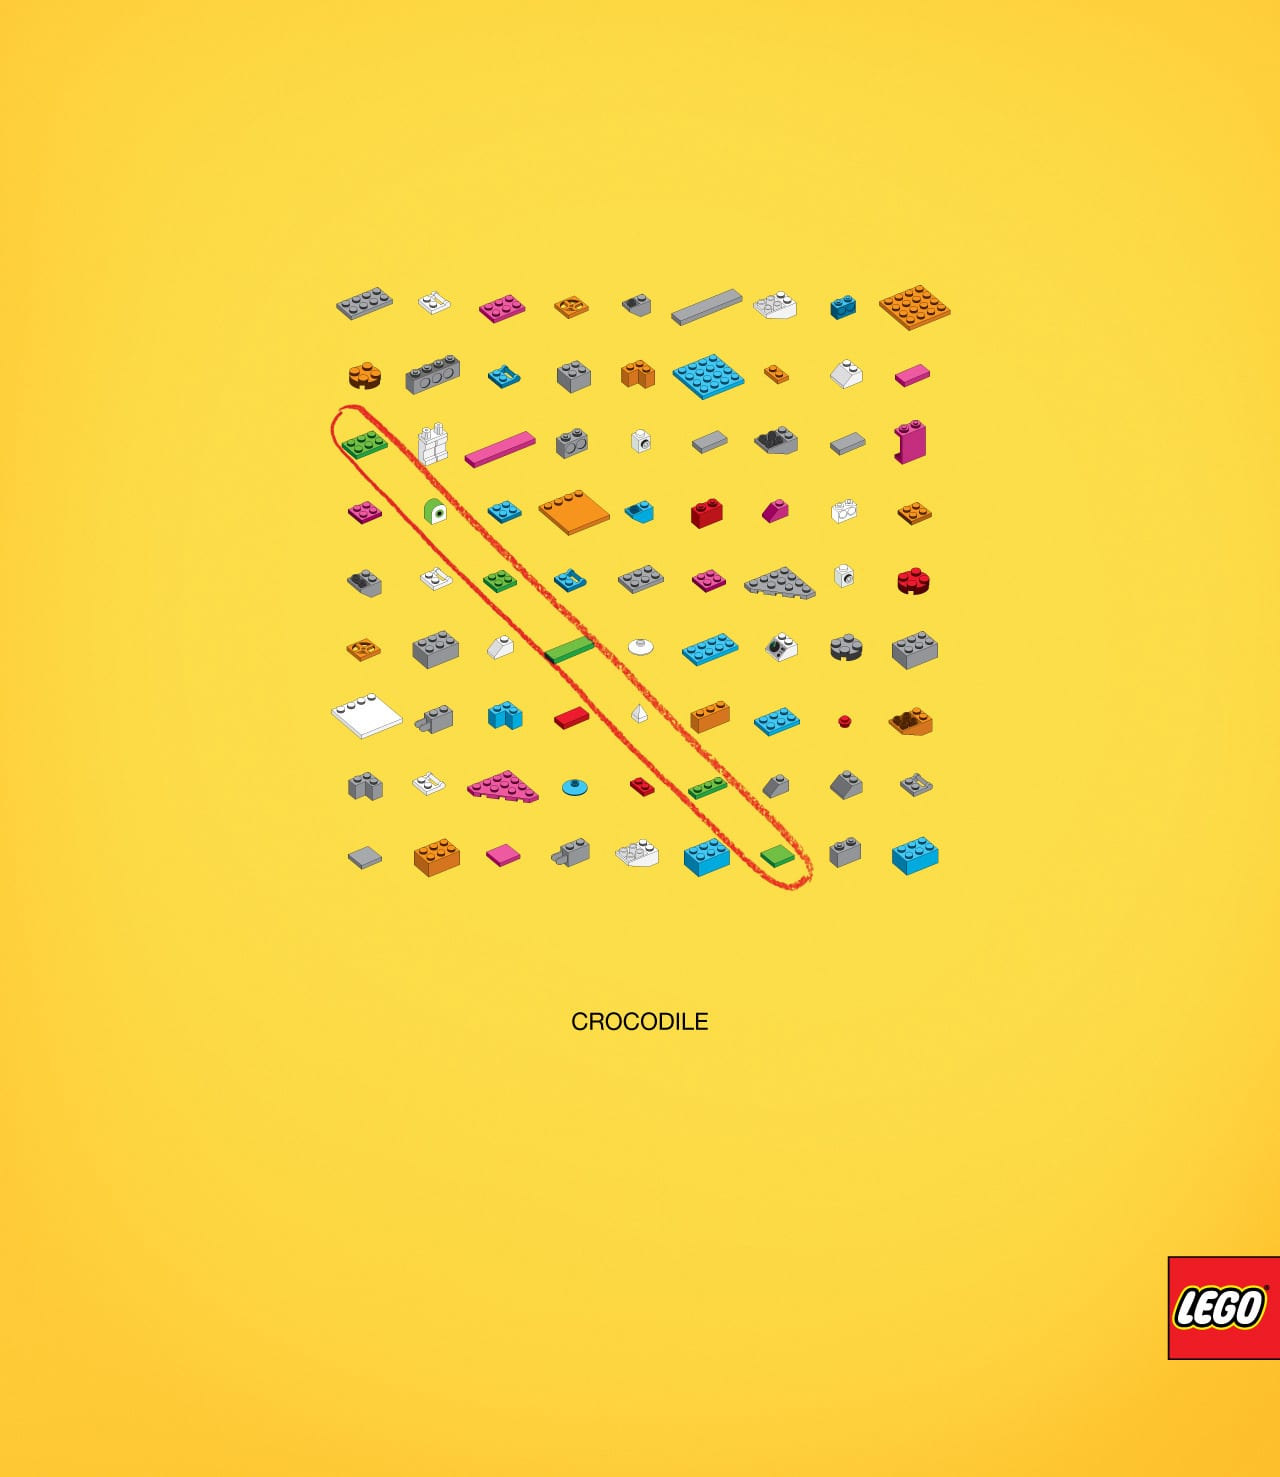 Lego Print Advert By Tbwa  Words Puzzle, Crocodile